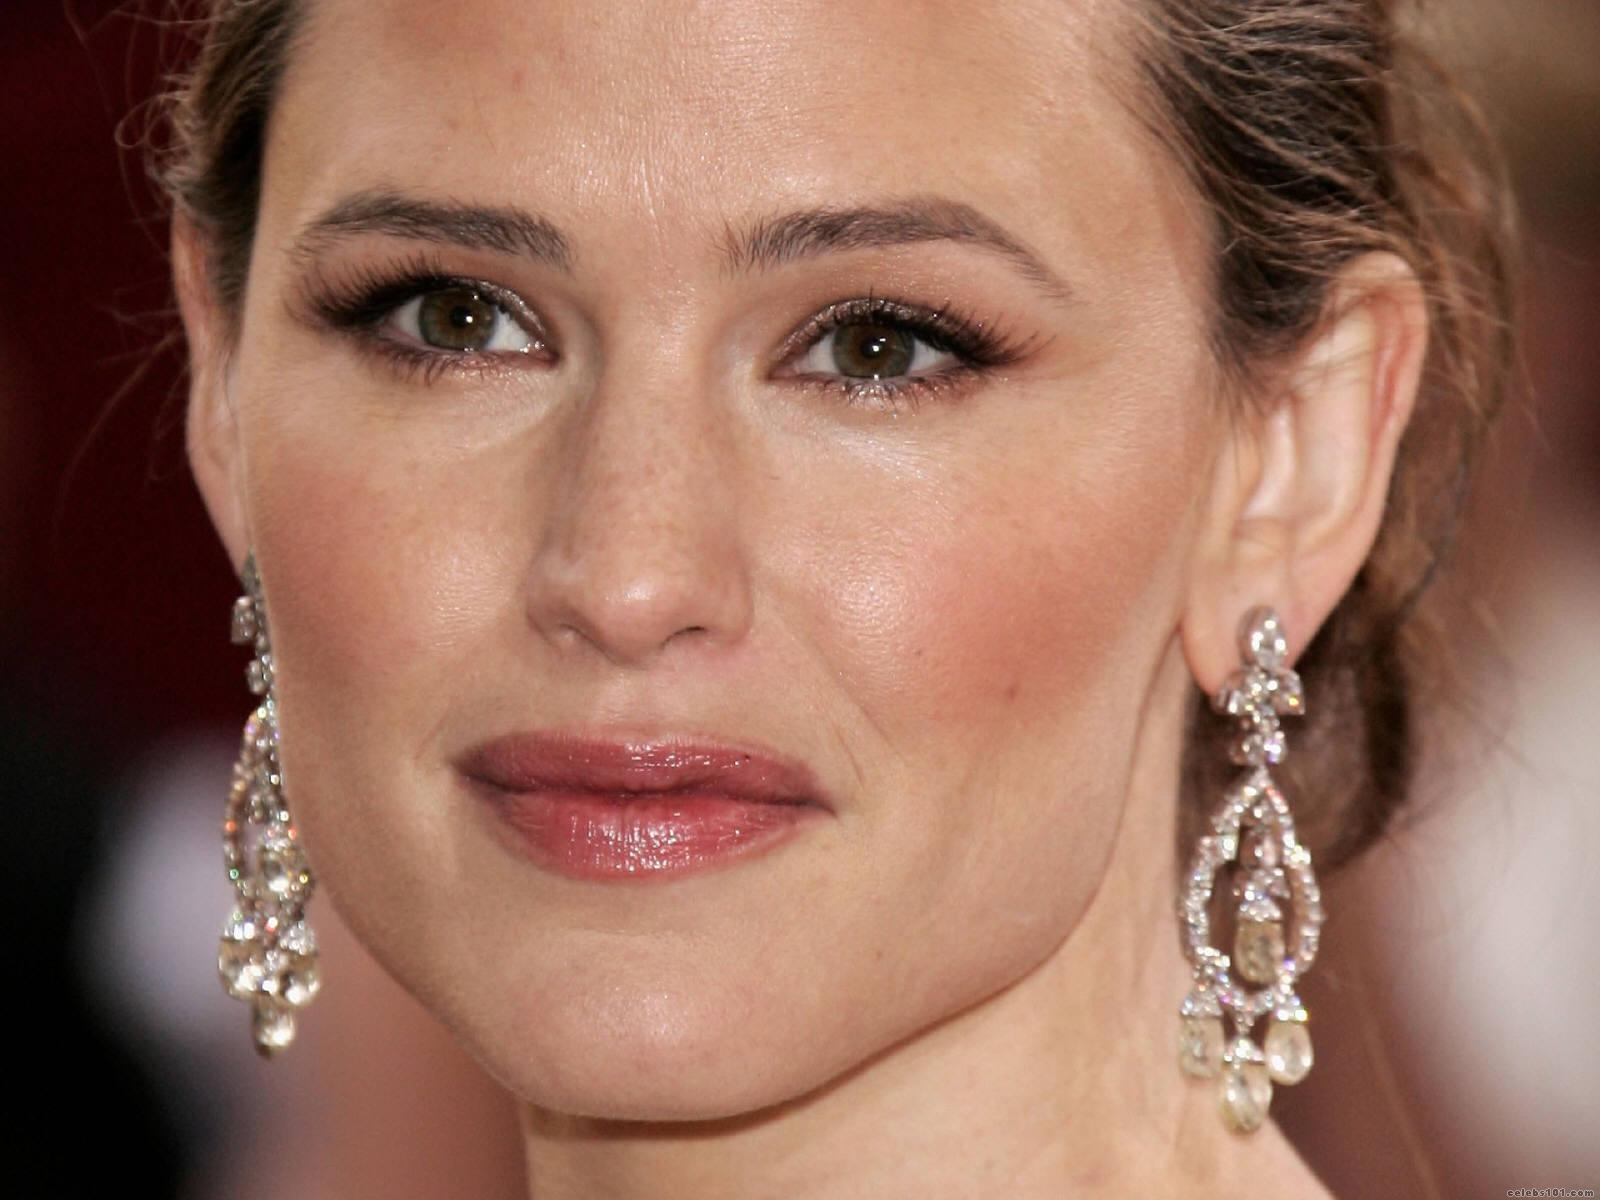 Apple Iphone X Wallpaper From Commercial Jennifer Garner Makeup Full Hd Pictures